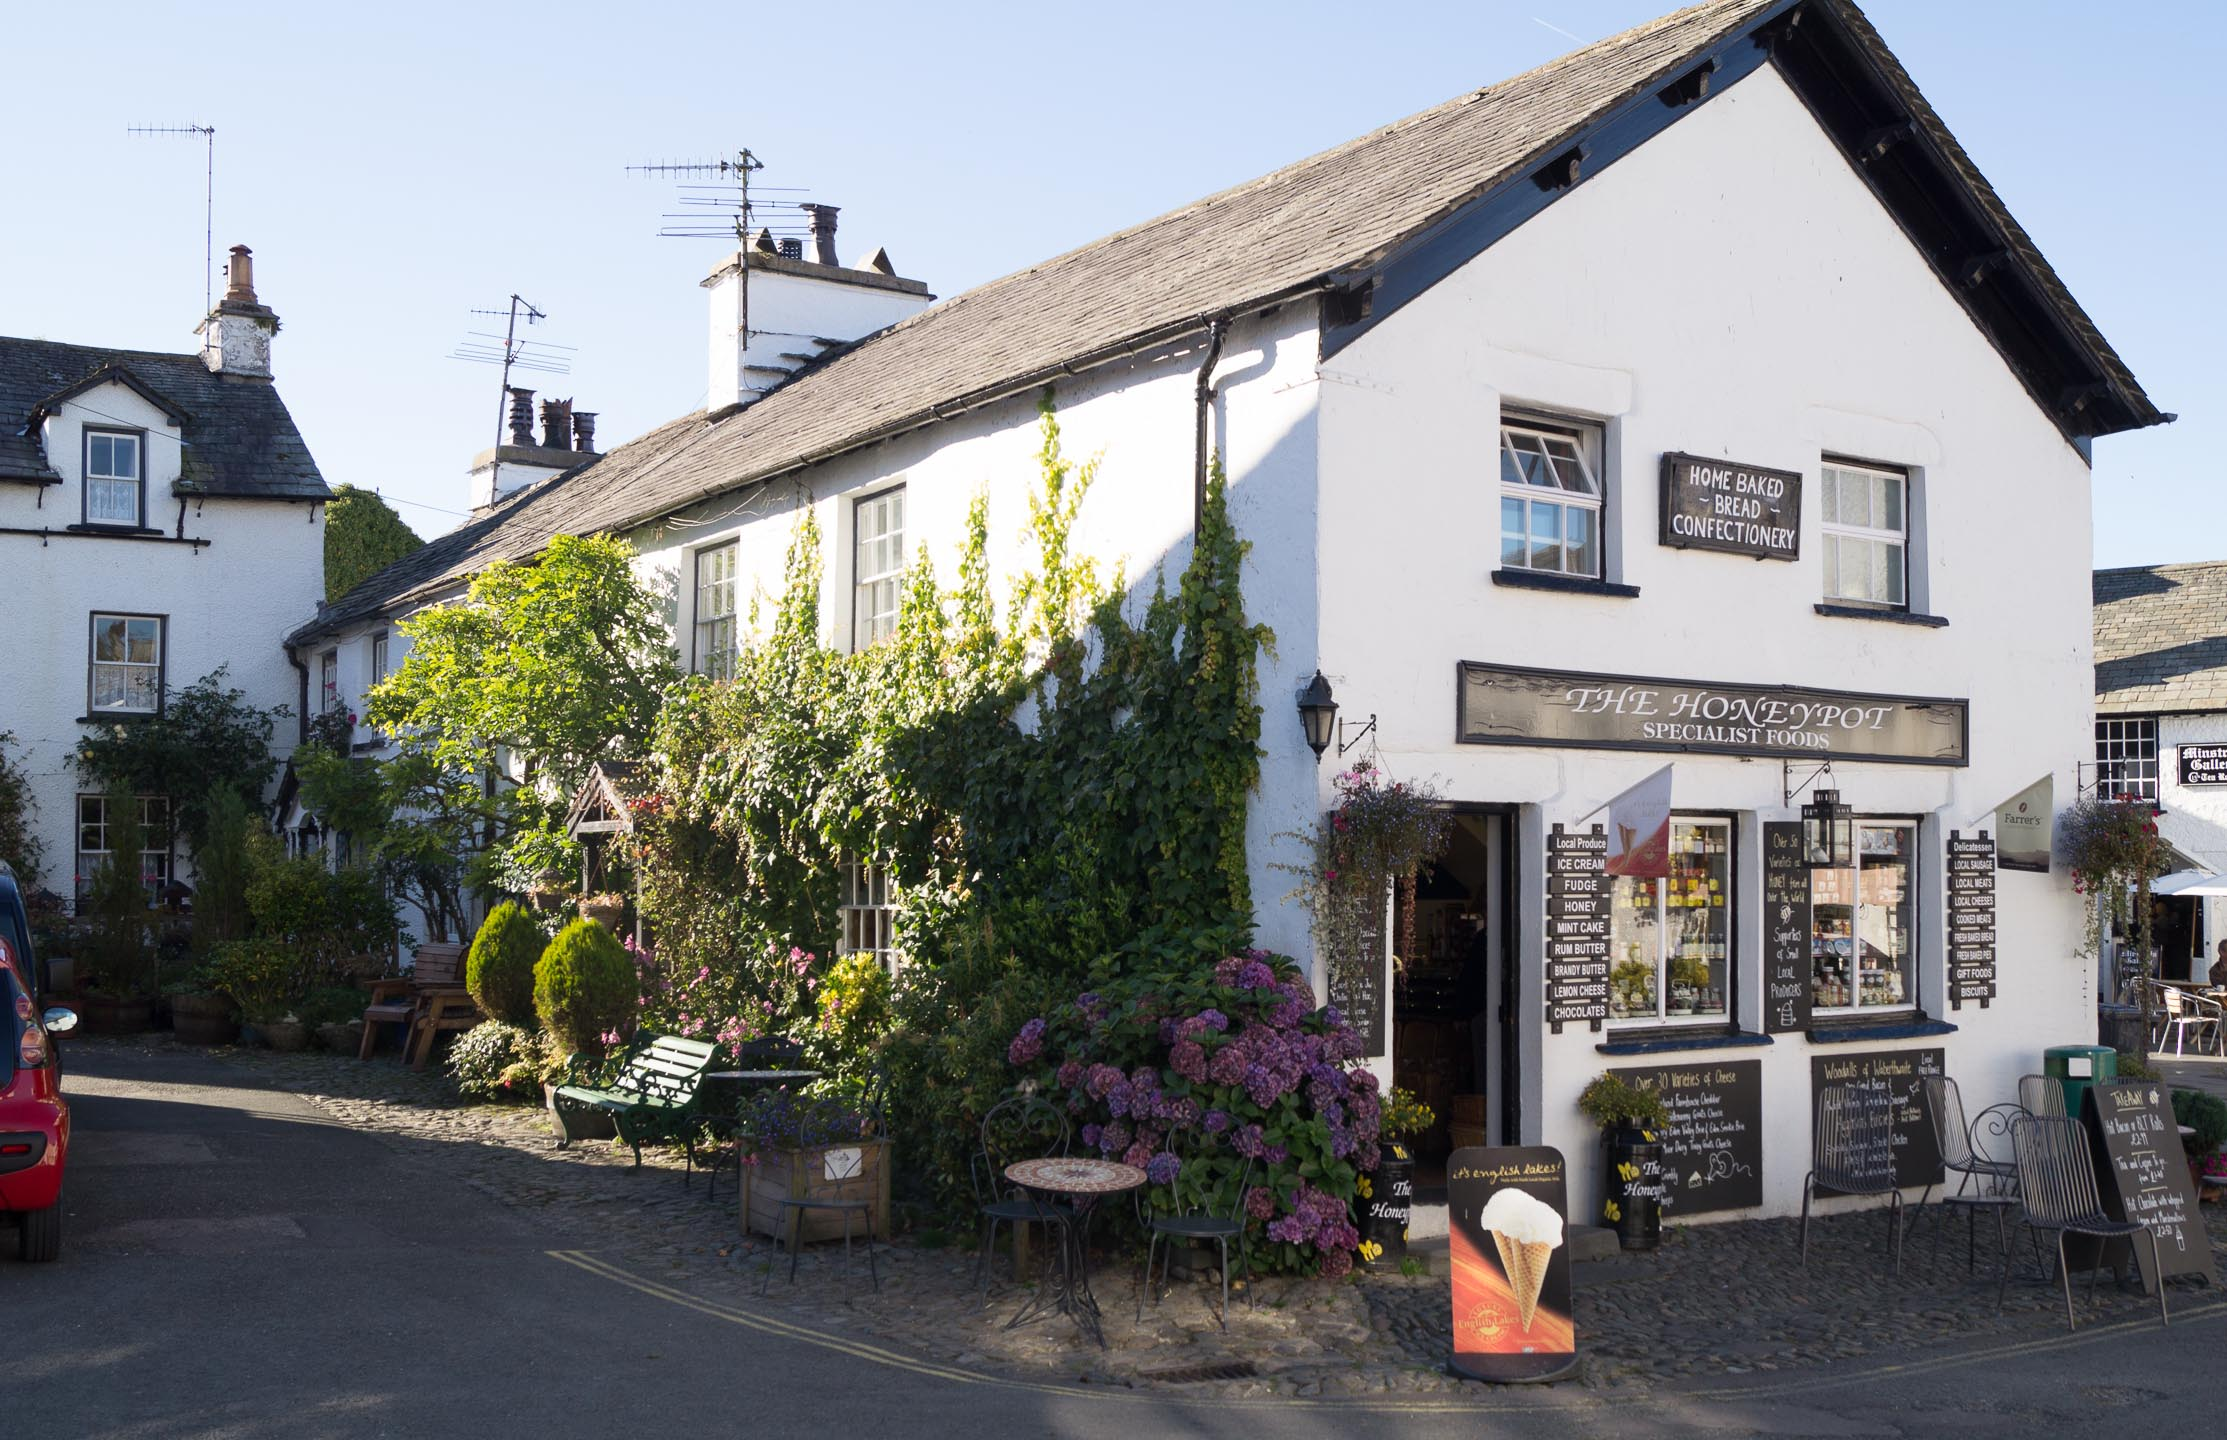 The village of Hawkshead